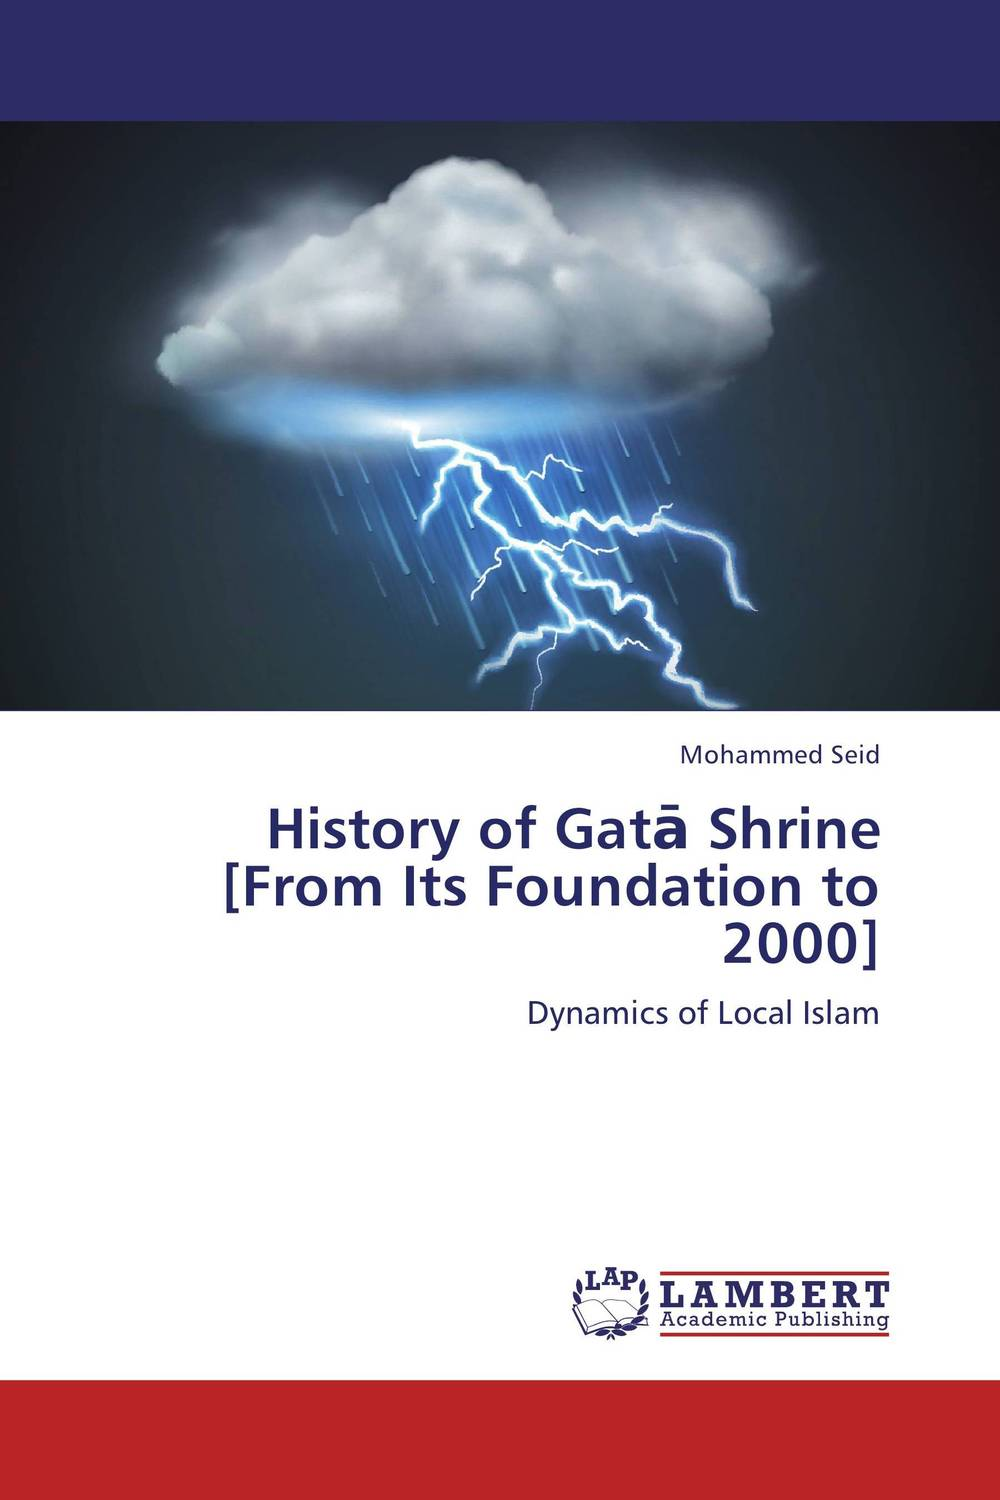 History of Gata Shrine [From Its Foundation to 2000]